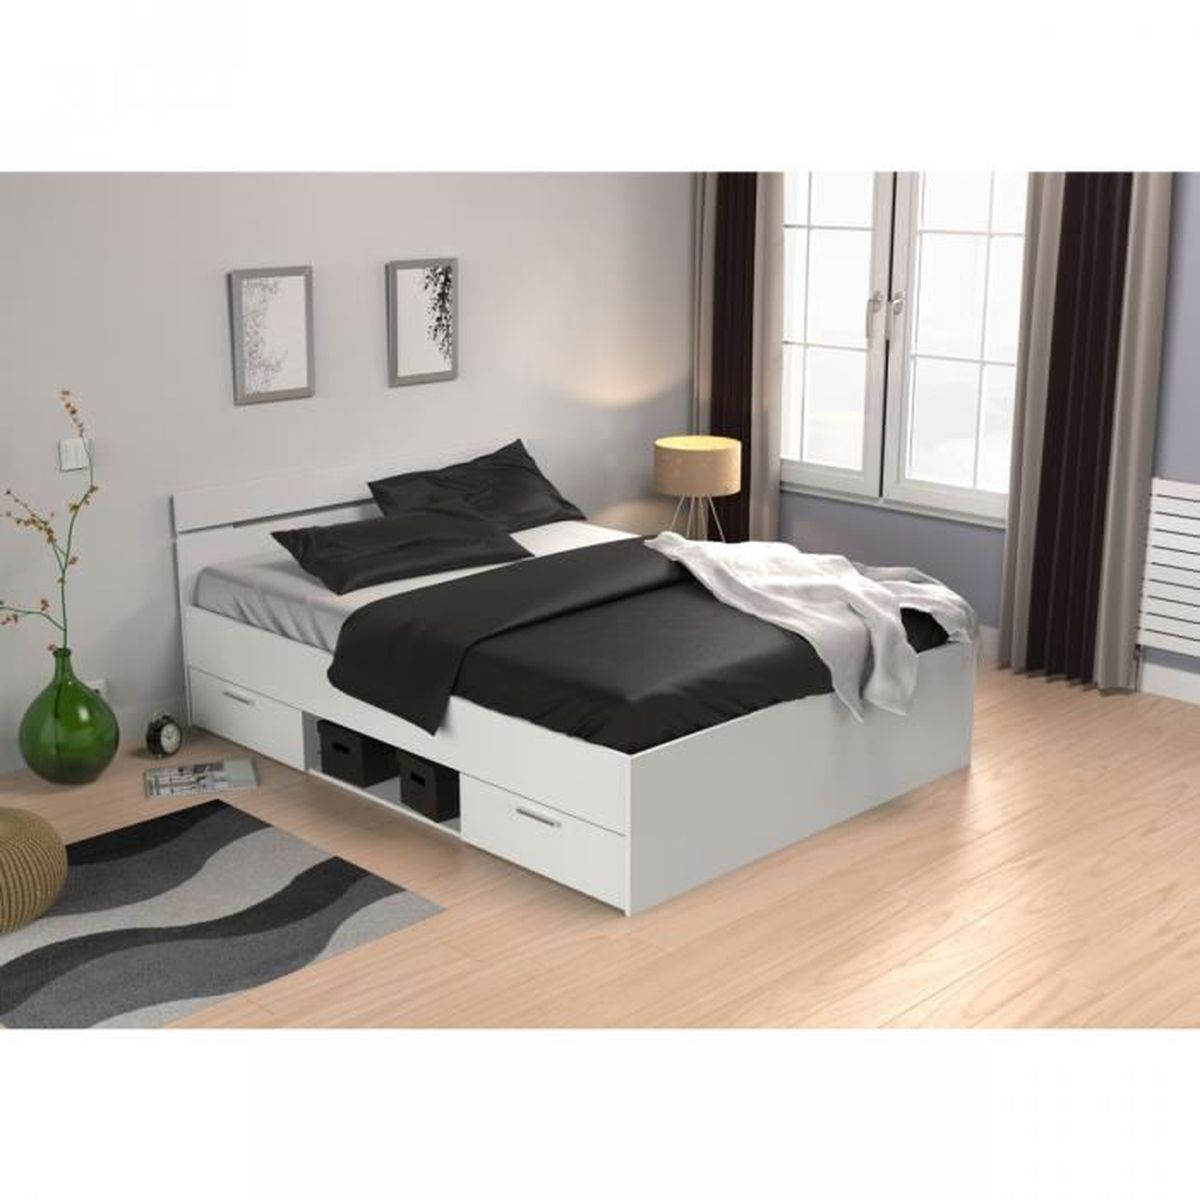 ensemble lit tiroirs blanc perle 140x190 matelas mississipi confort achat vente lit complet. Black Bedroom Furniture Sets. Home Design Ideas